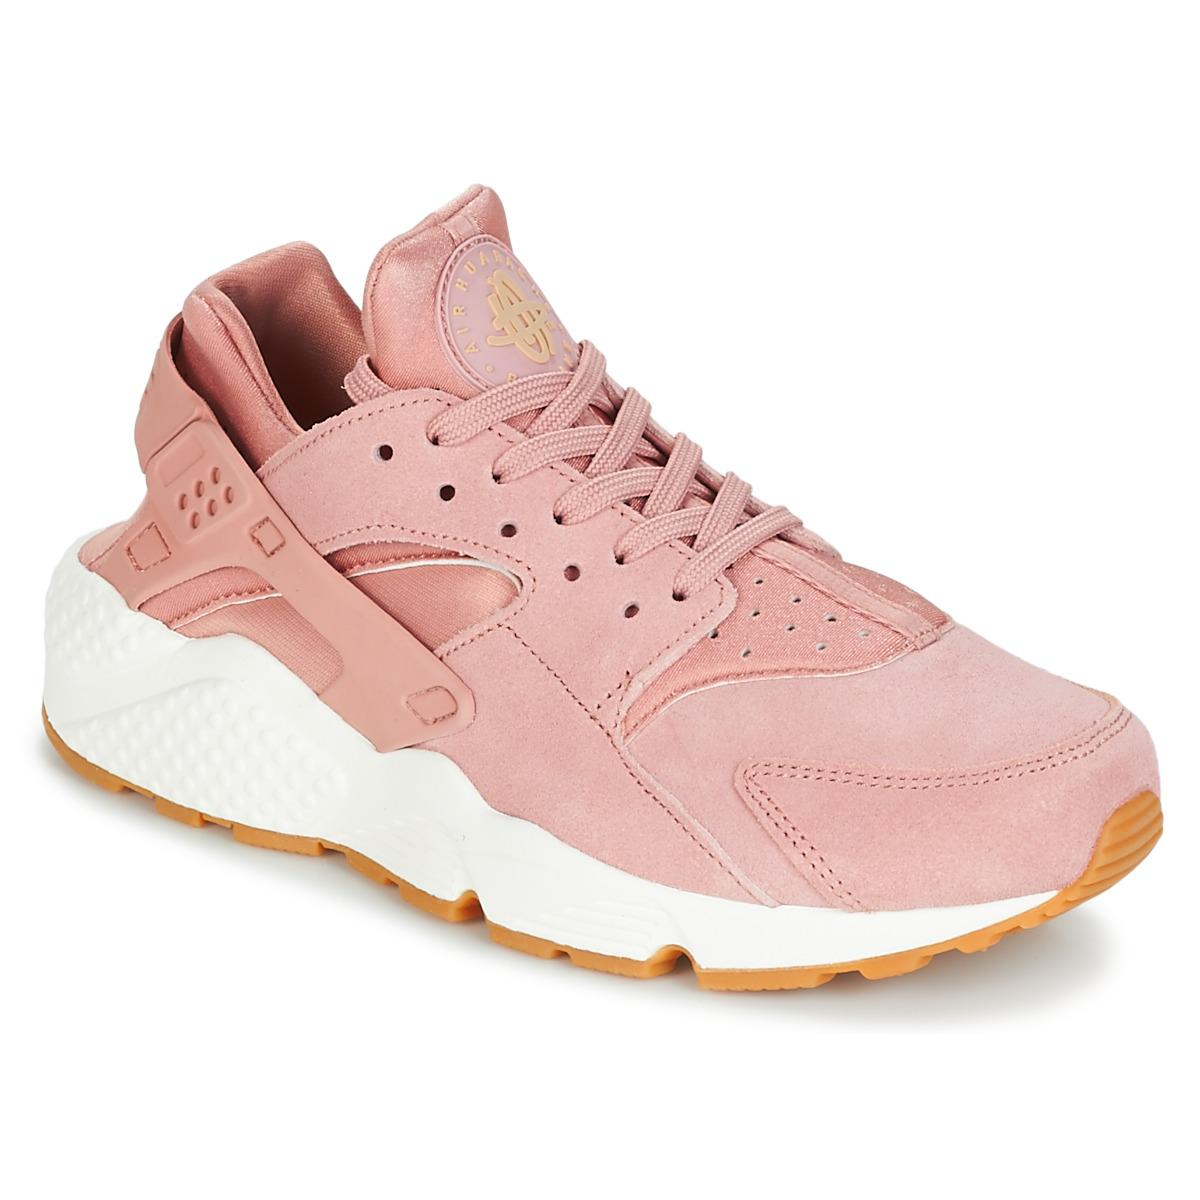 brand new 08c51 8eb2e Nike Air Huarache Run Sd W Women's Shoes (trainers) In Pink in Pink ...